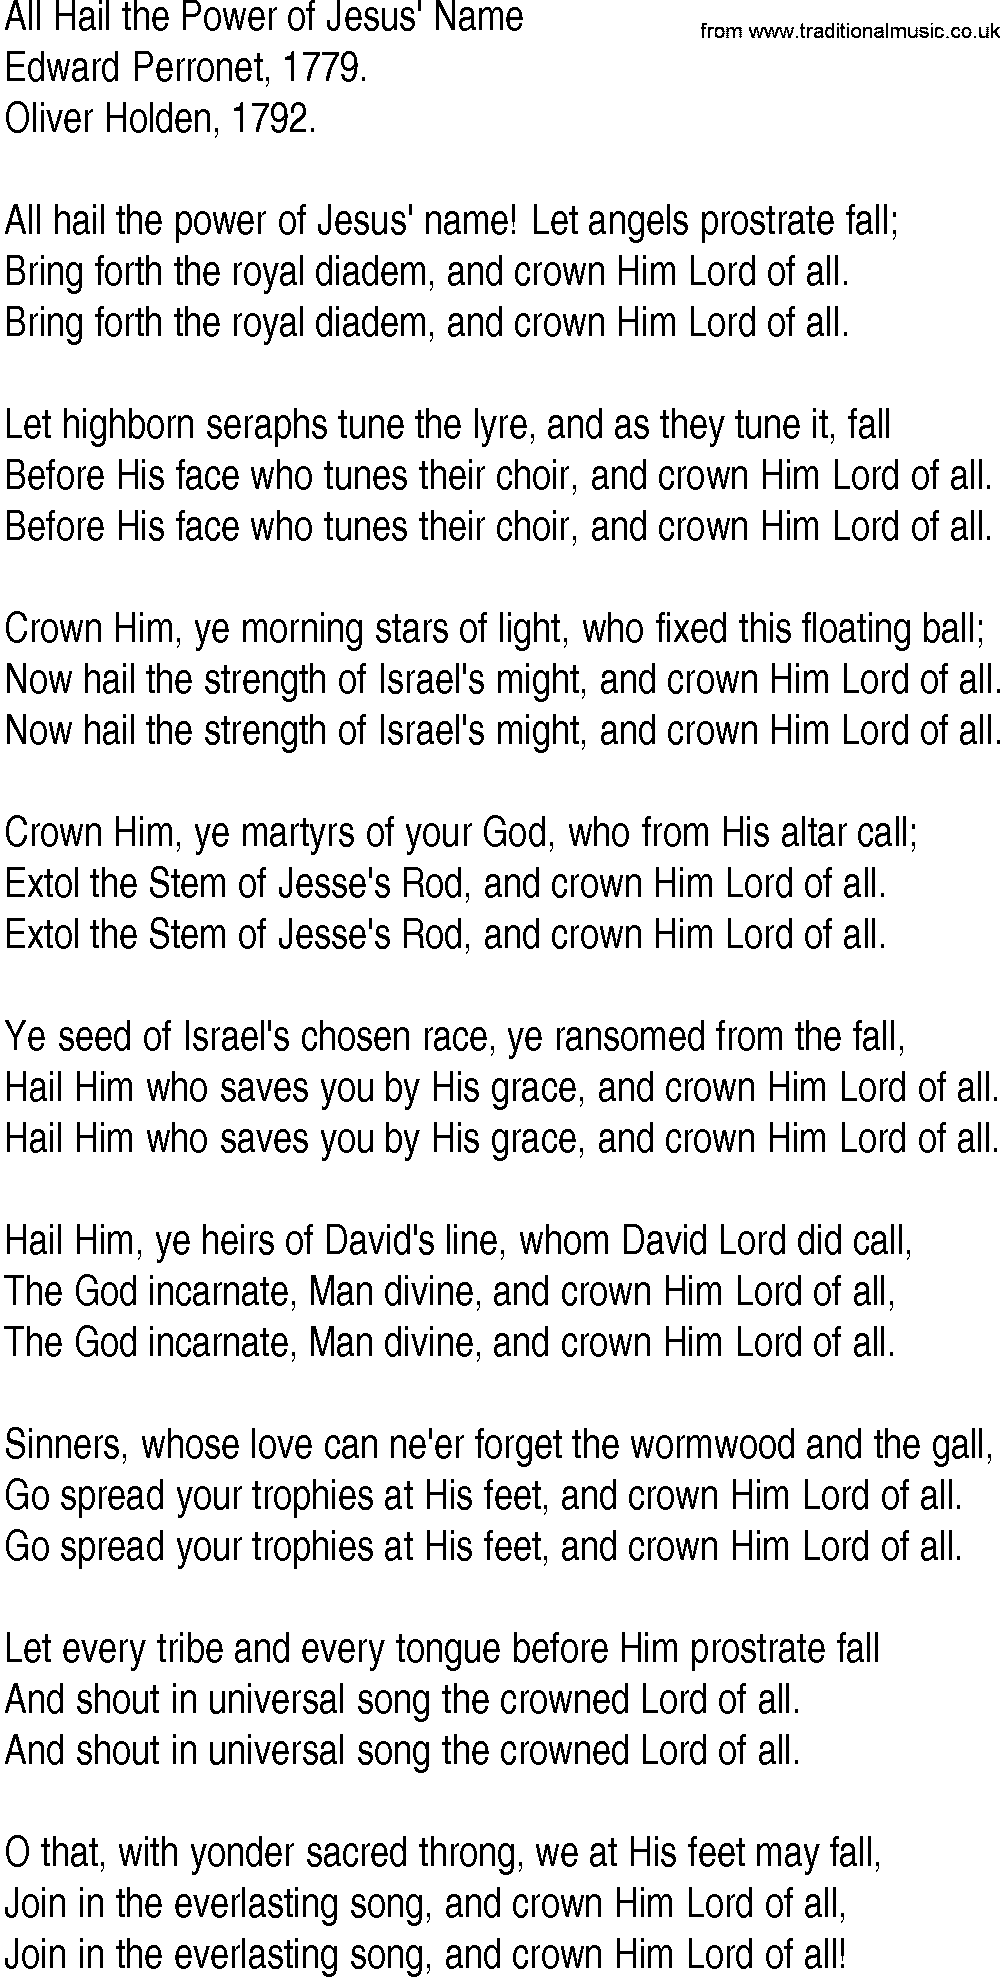 All Hail the Power of Jesus' Name - HymnSite.com - United ...